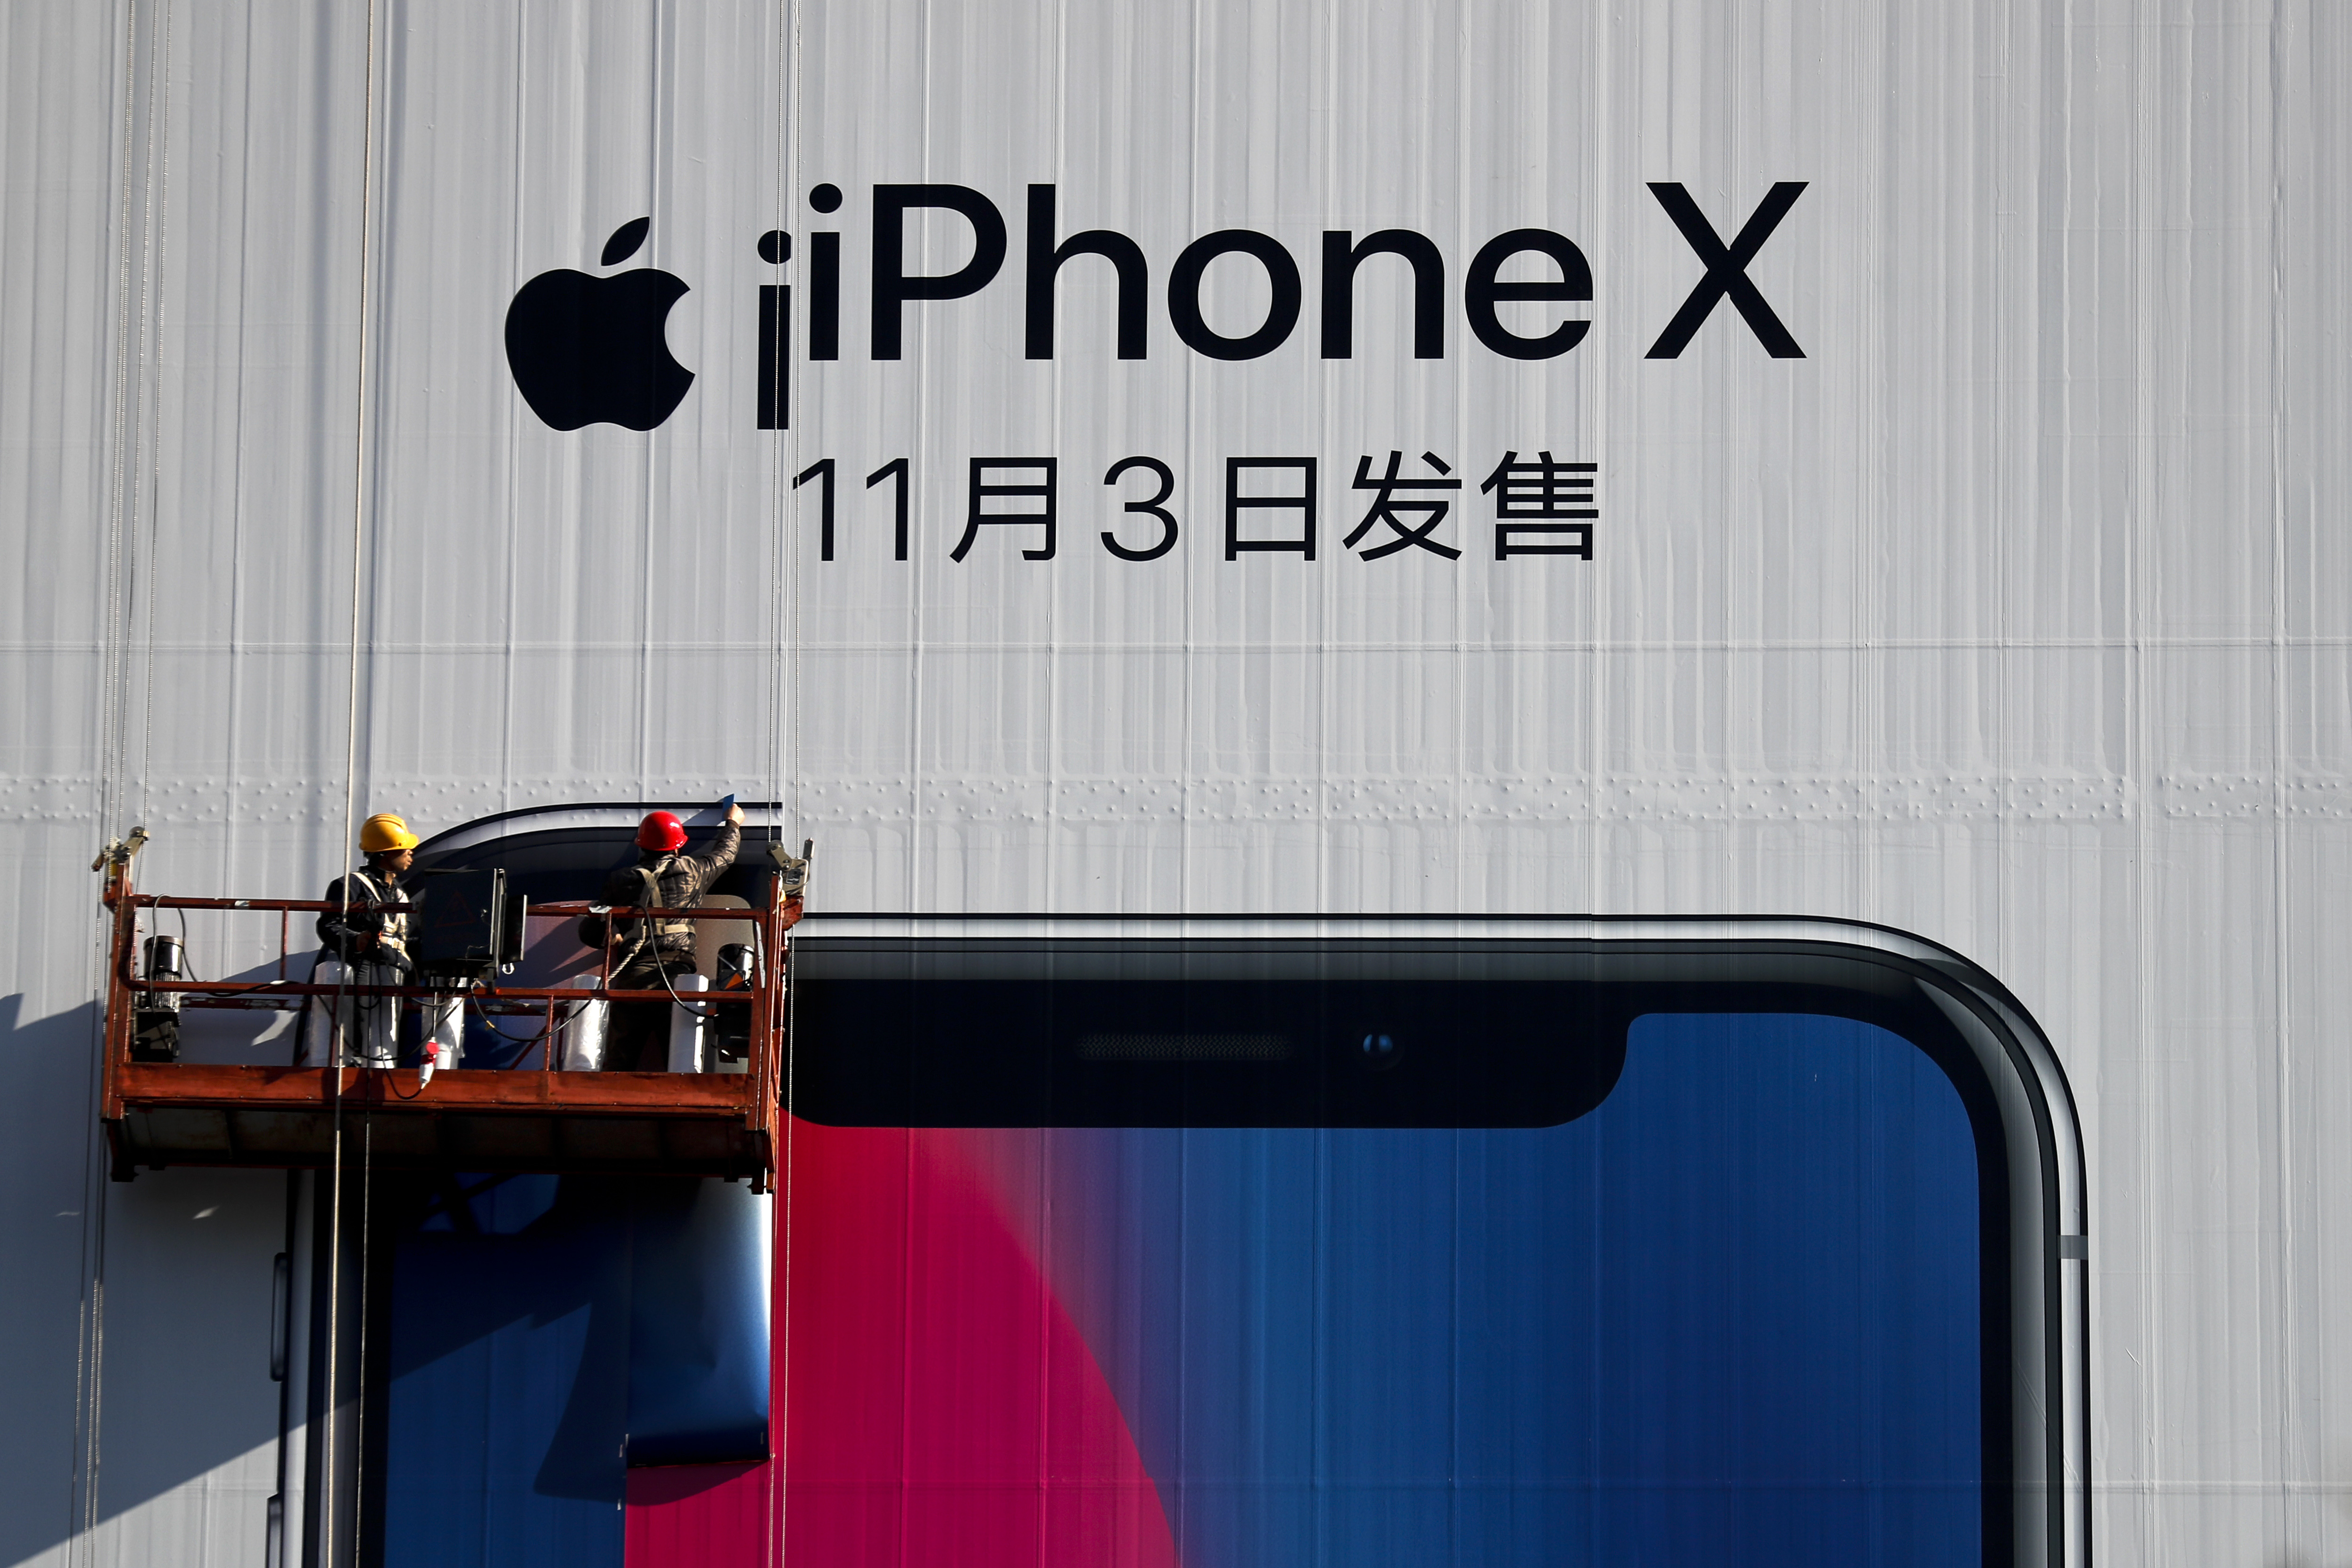 Workers on a suspended platform replace an advertisement poster for the new iPhone X on a building in Beijing, Oct. 30, 2017.